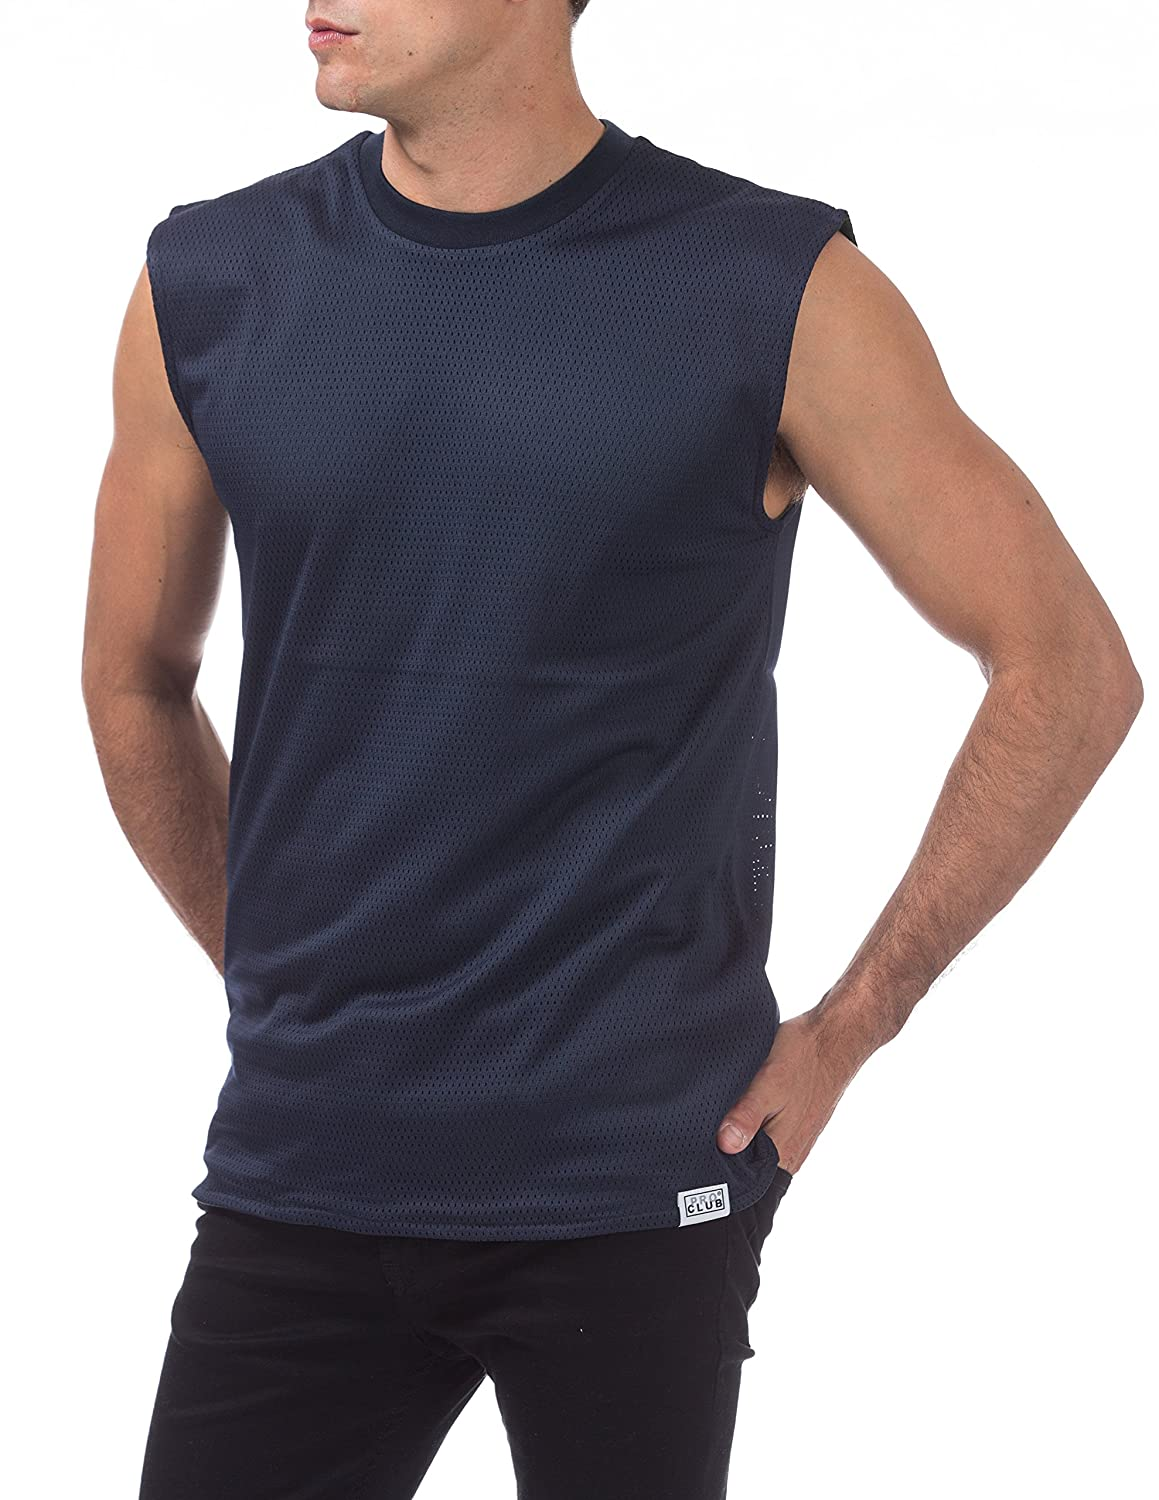 08be7dbdd Pro Club Men's Sleeveless Reversible Mesh Muscle Tee at Amazon Men's  Clothing store: